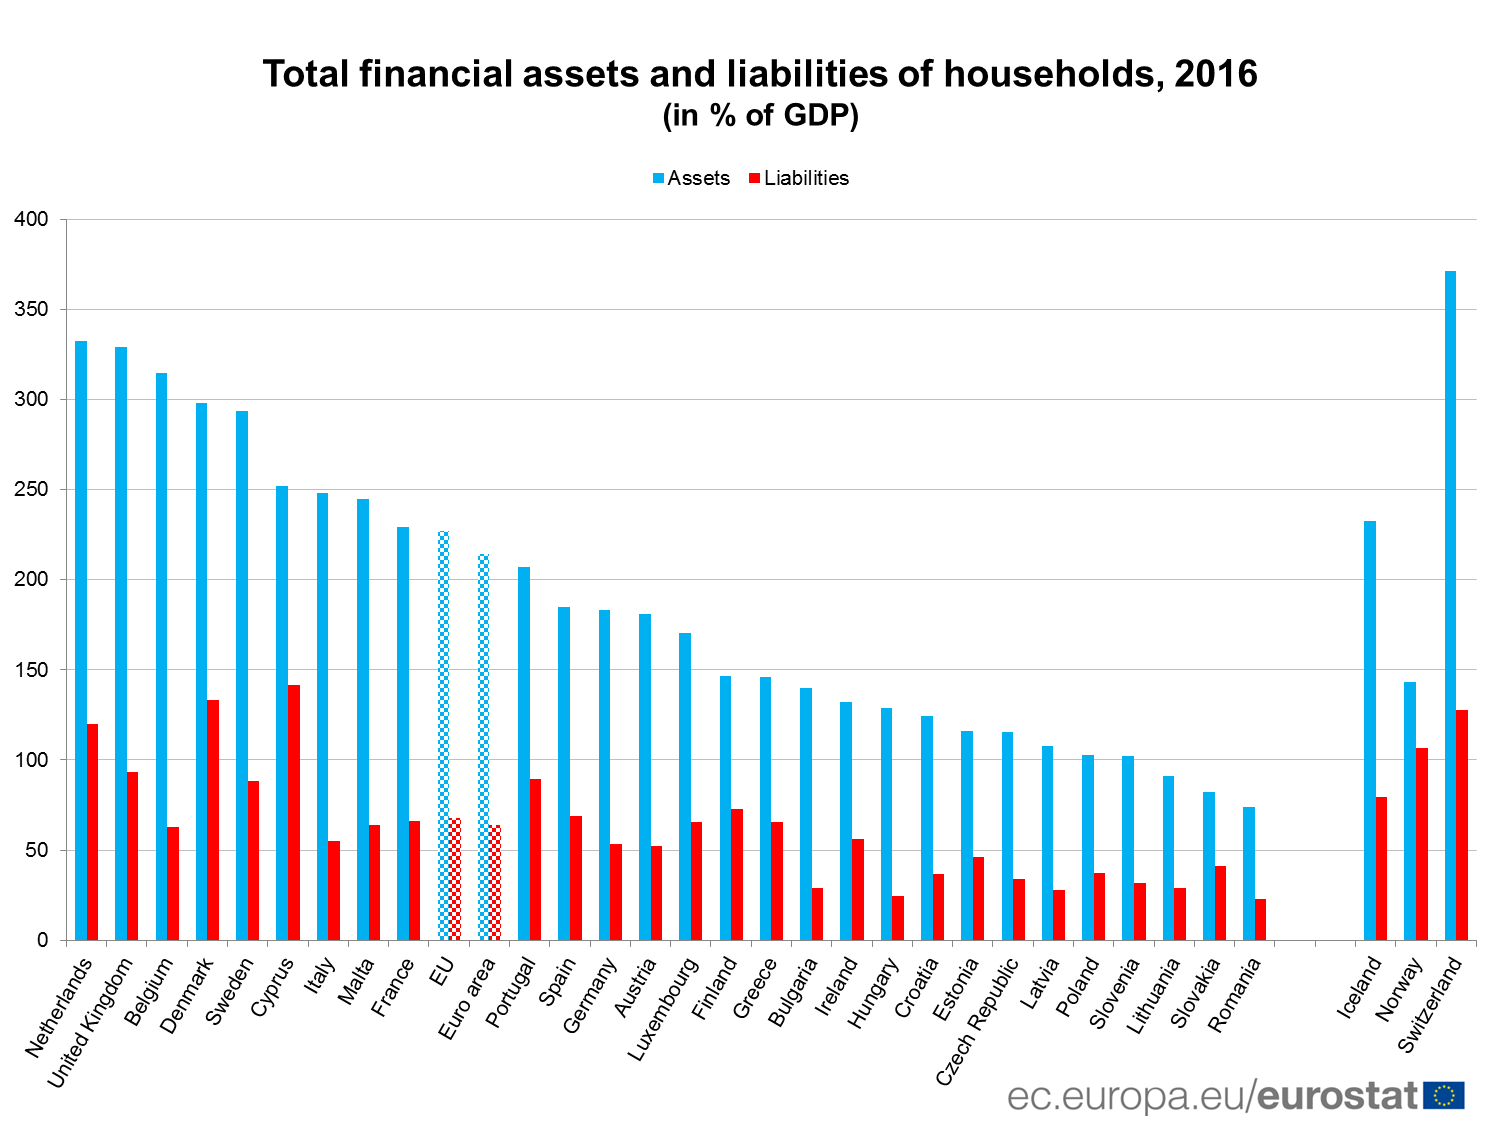 Total financial assets and liabilities of households, 2016